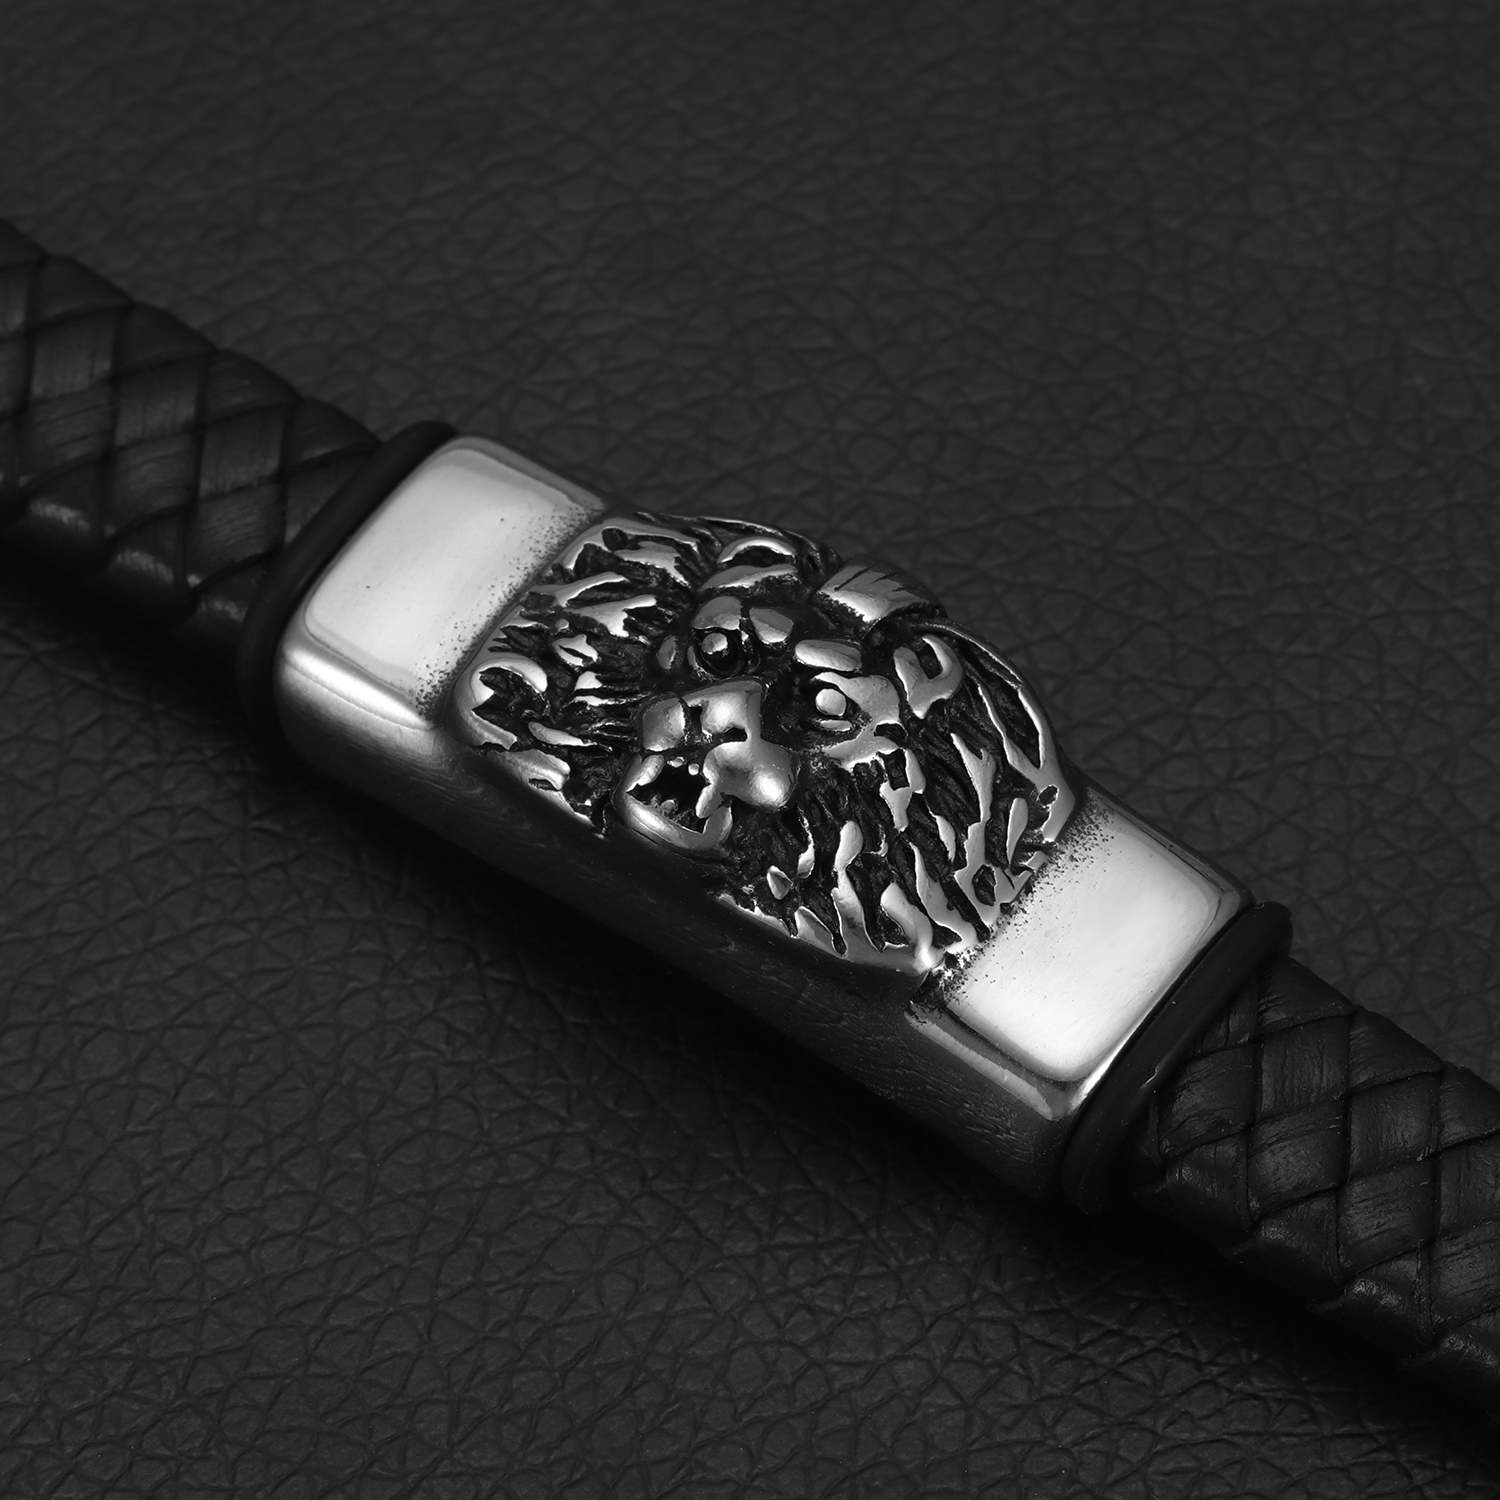 Stainless Steel Punk Male Lion Slider Beads 12 6mm Hole Slide Charms for Men Leather Bracelet Jewelry Making DIY Accessories in Beads from Jewelry Accessories